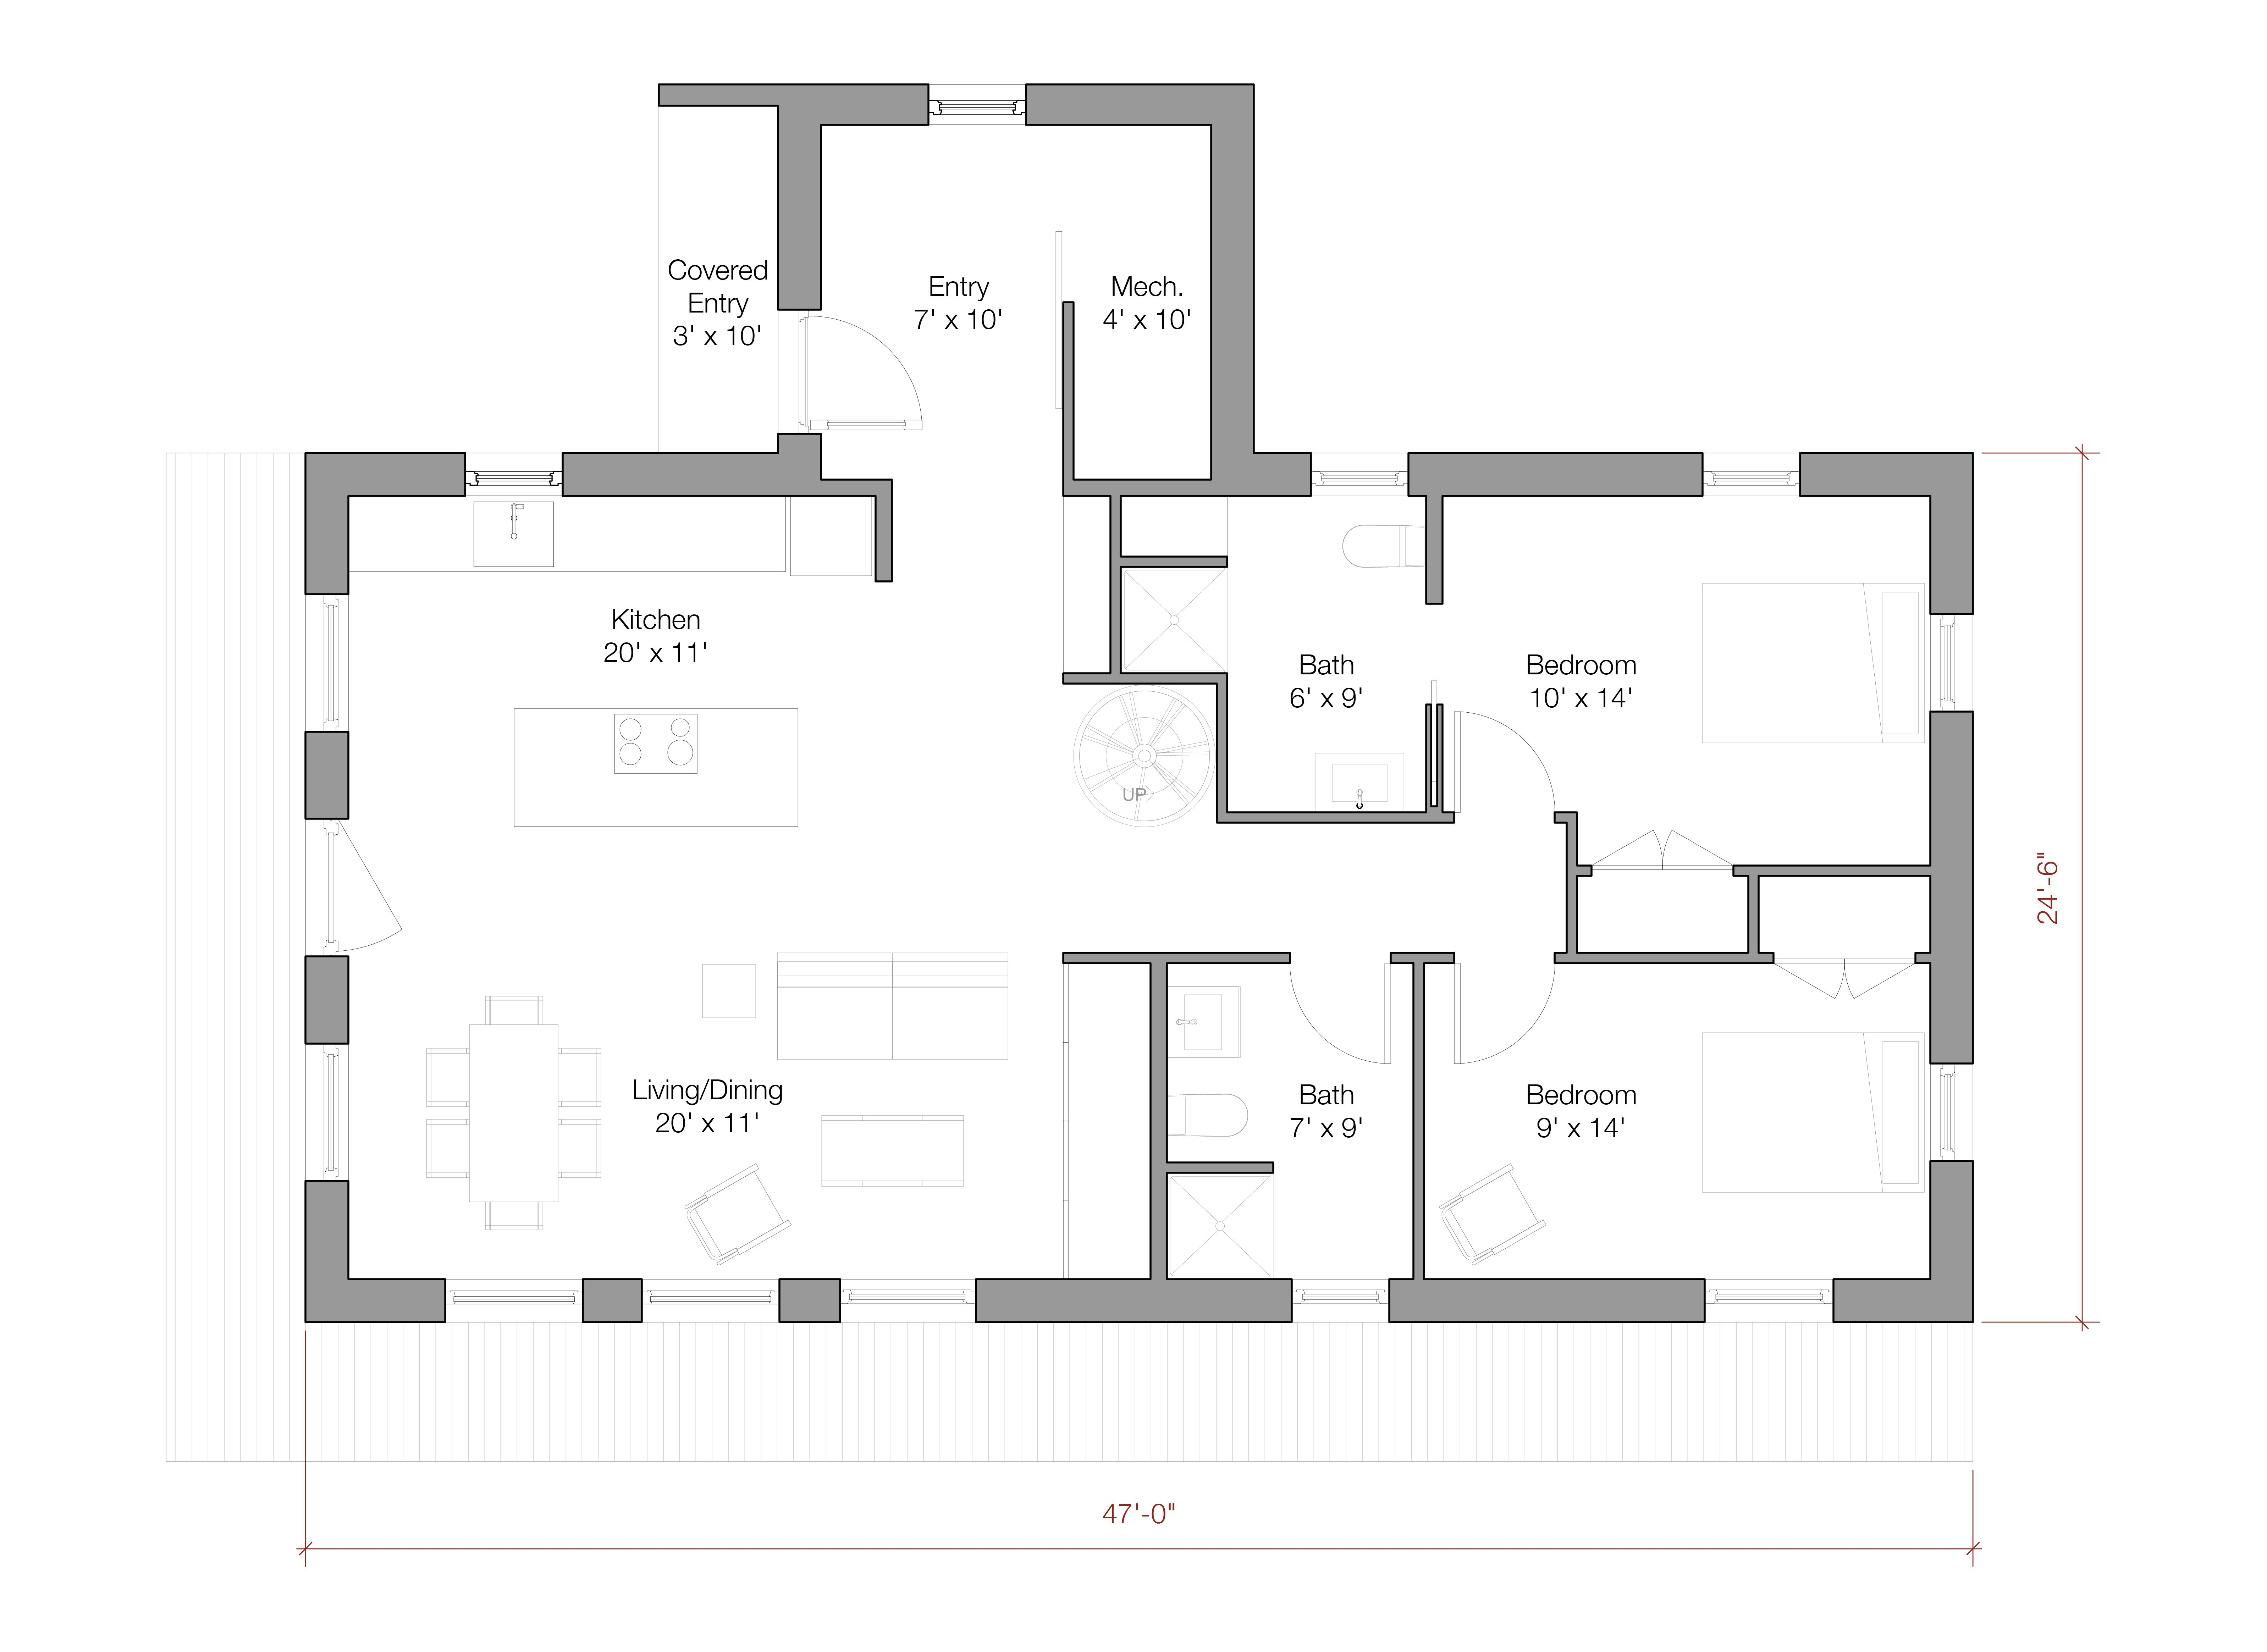 The 1,200 sq. ft. model offers single story living with a